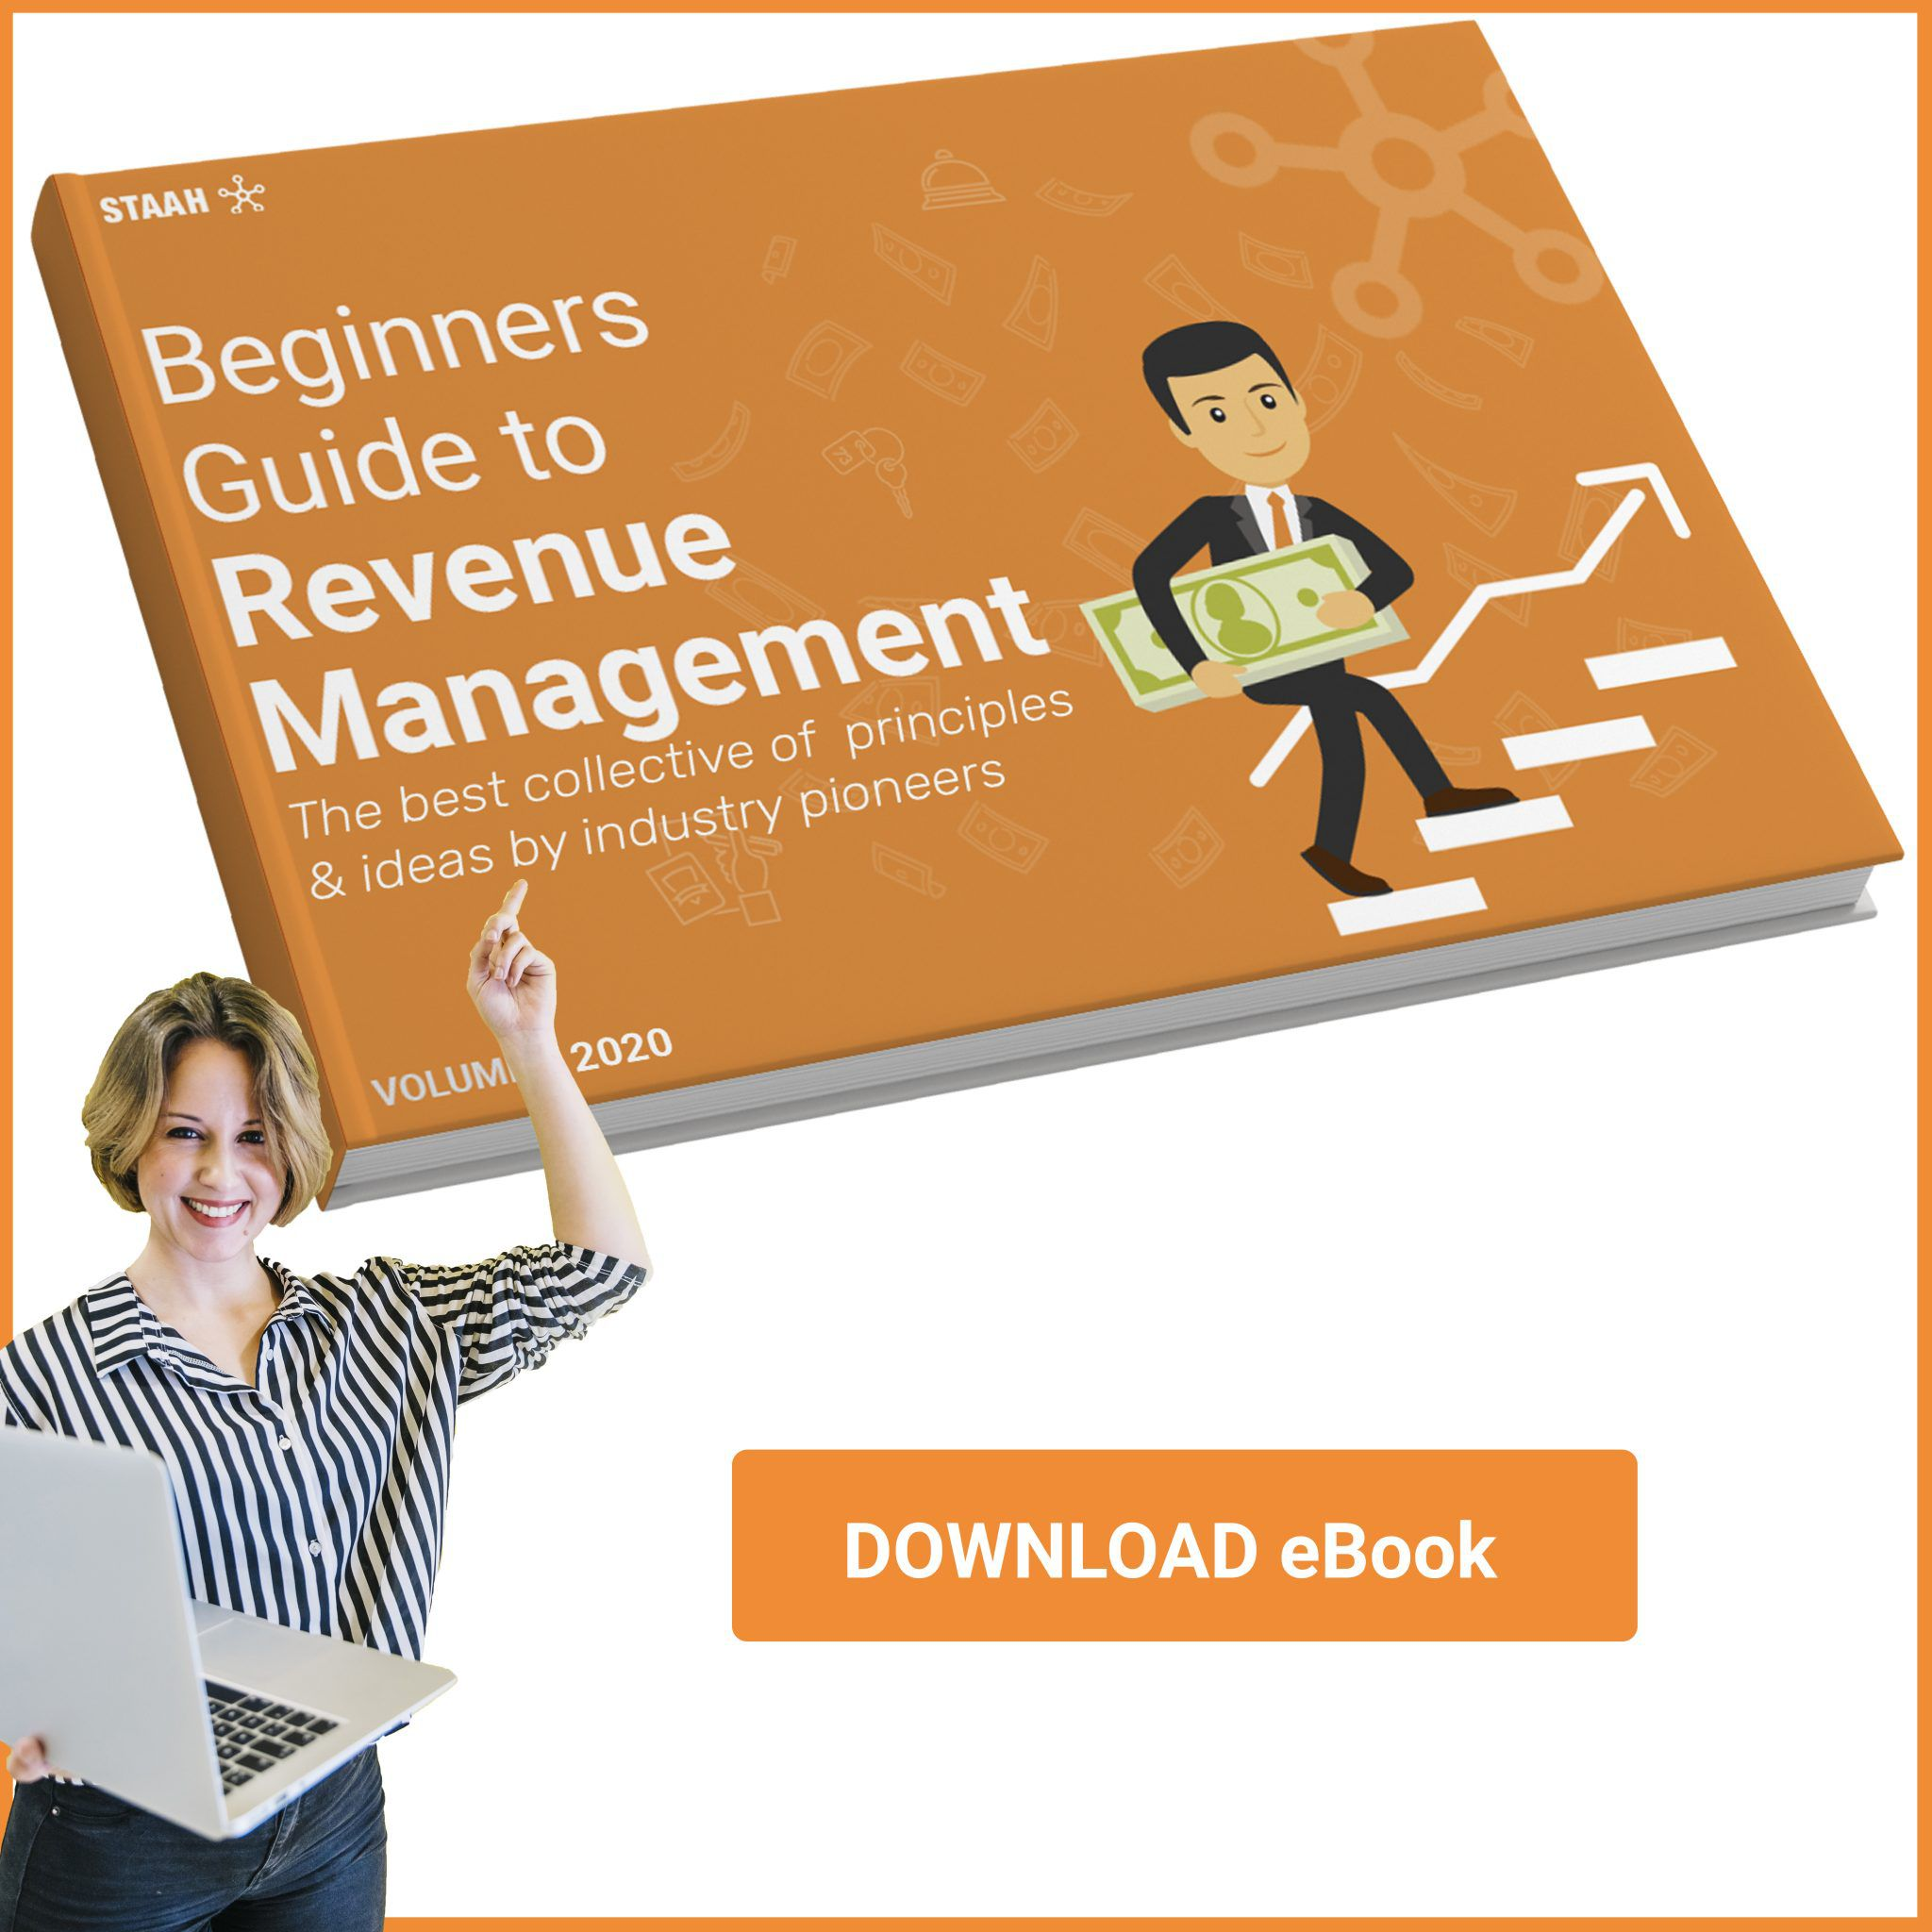 GUIDE TO REVENUE MANAGEMENT